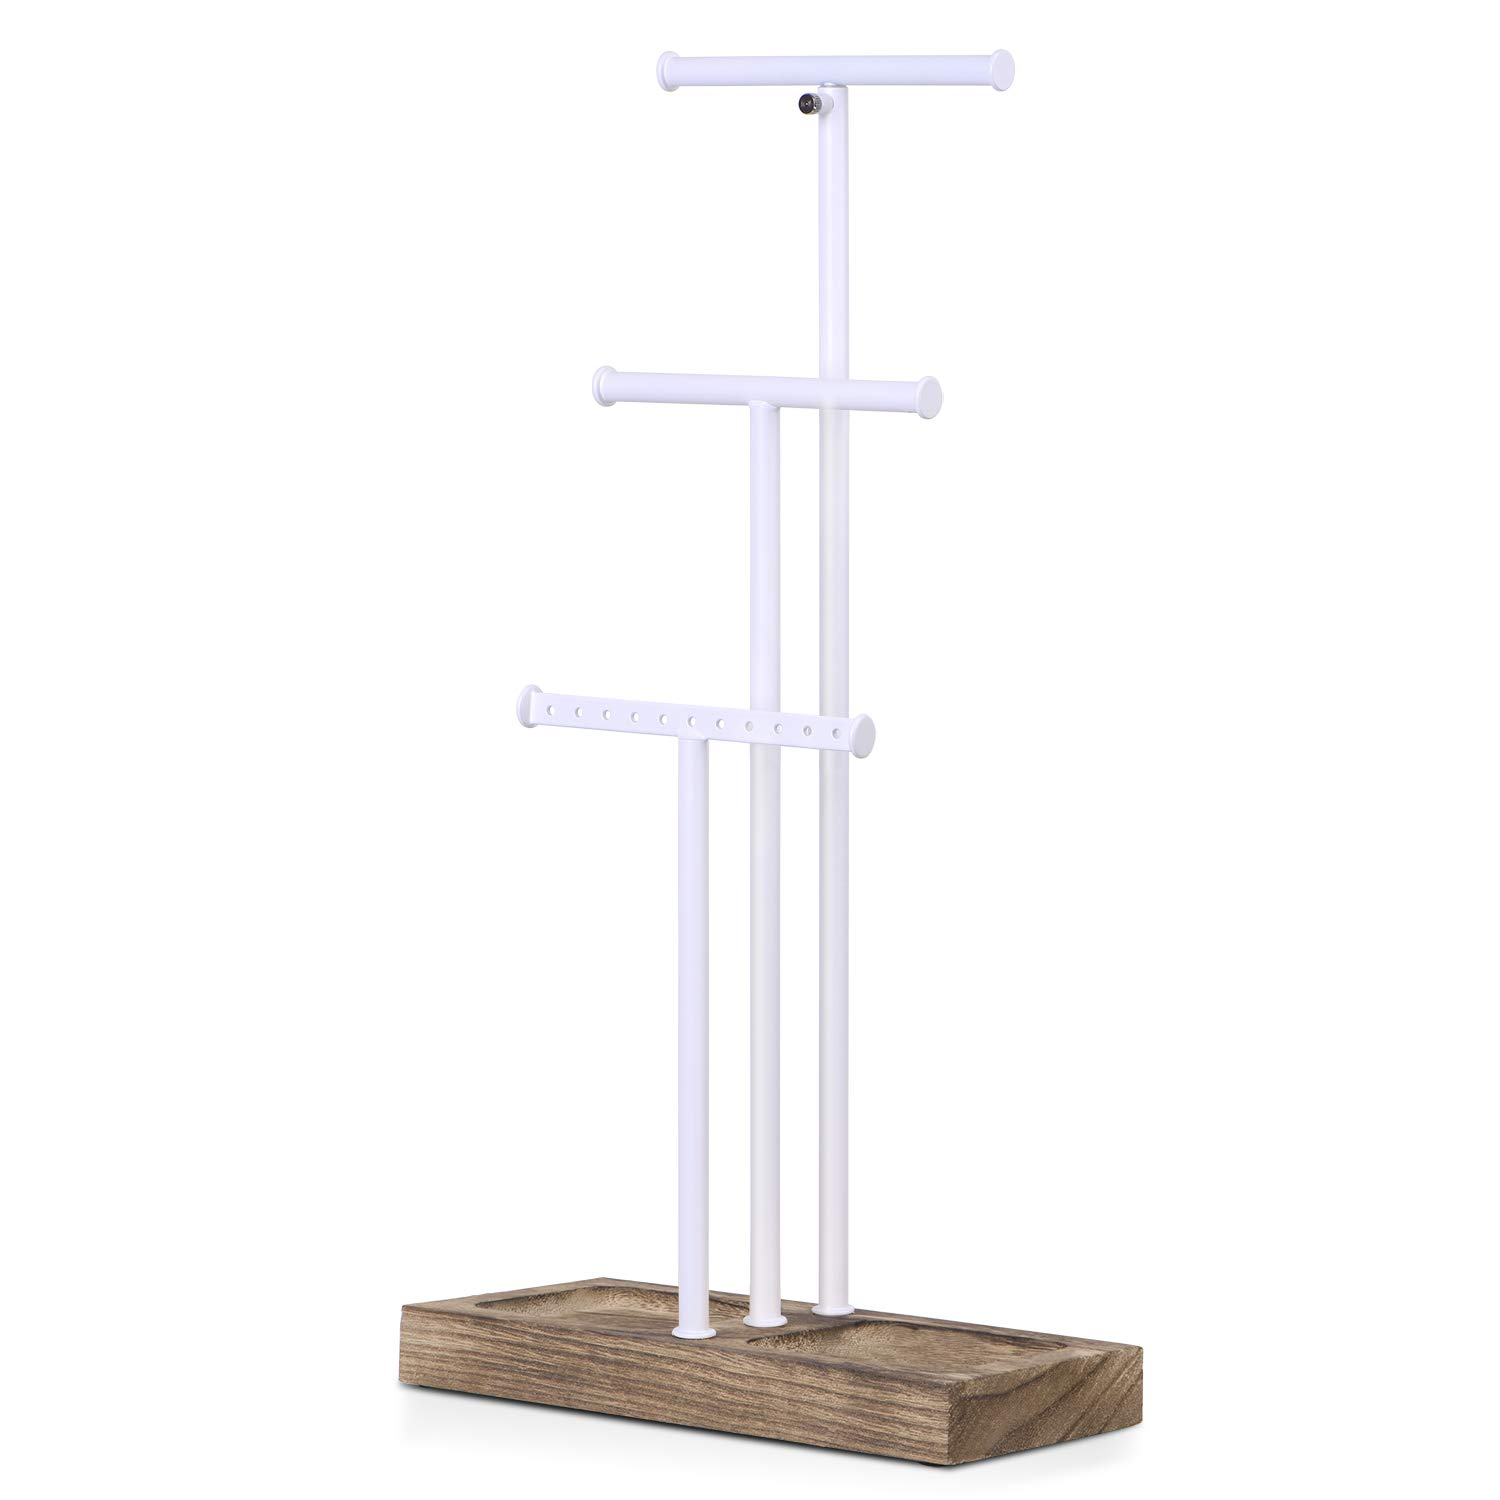 Love-KANKEI Jewelry Tree Stand White Metal and Wood Basic Large Storage Necklaces Bracelets Earrings Holder Organizer White and Carbonized Black by Love-KANKEI